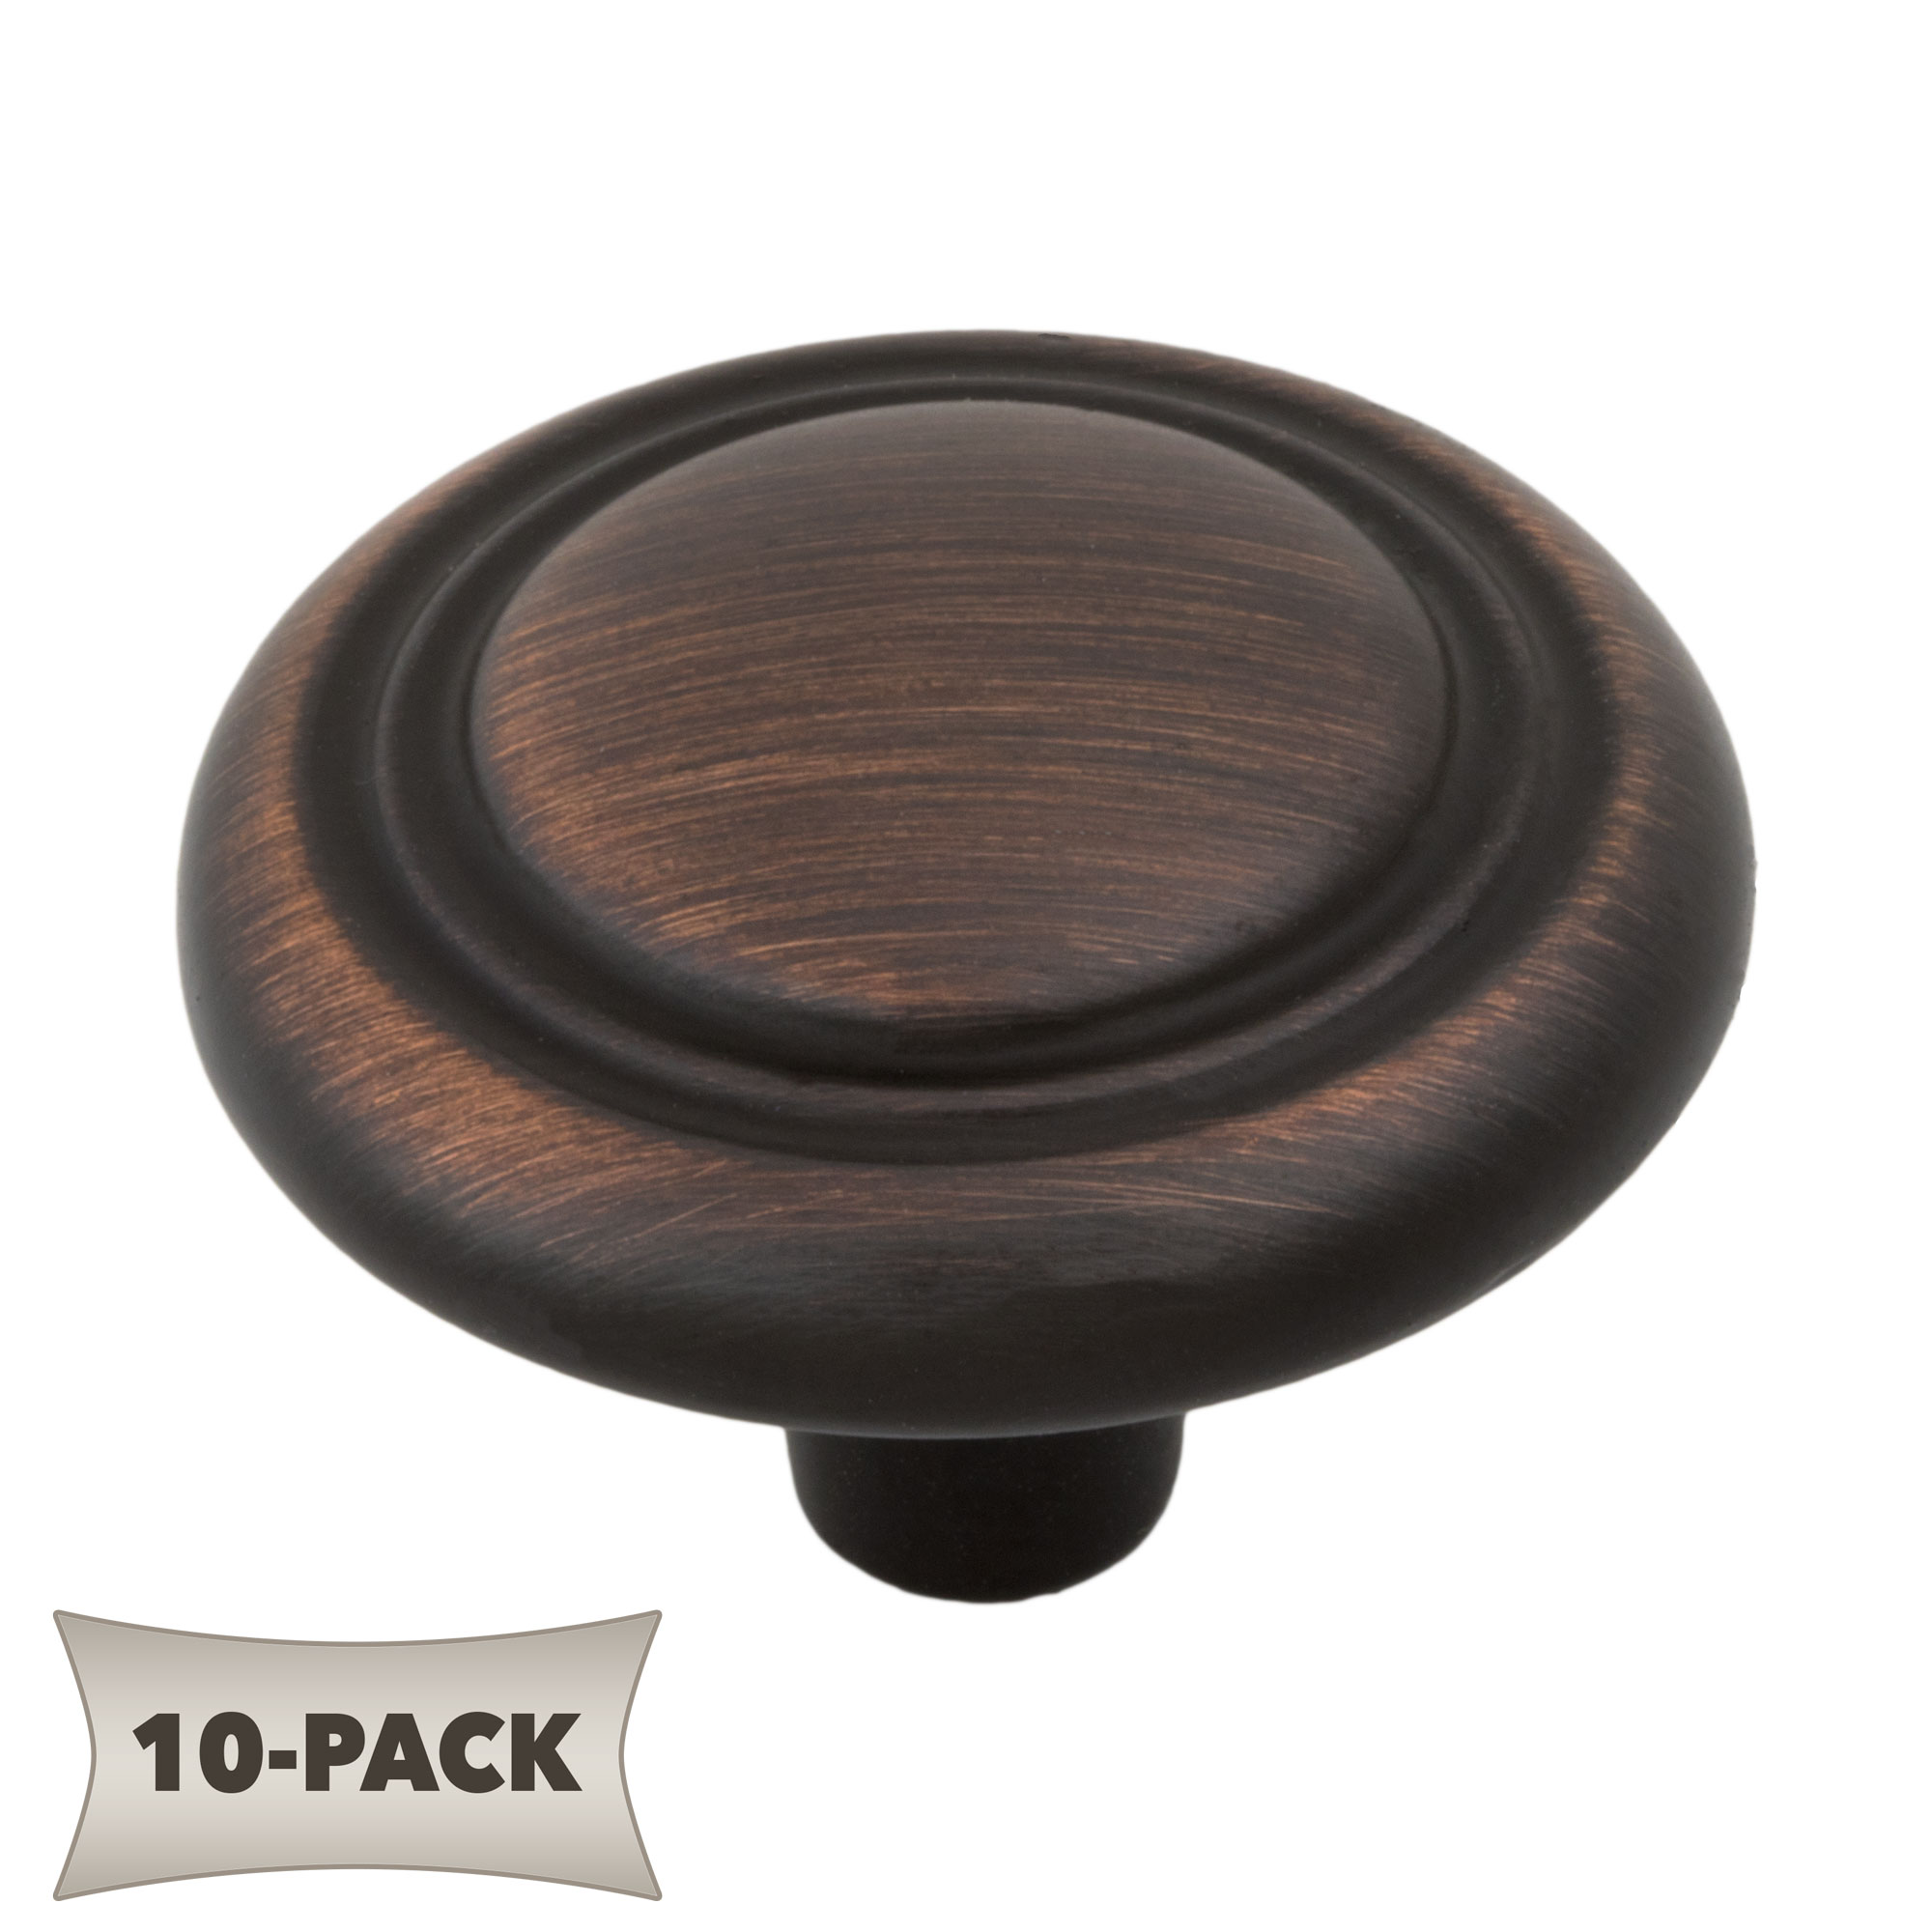 10-Pack Button Rimmed Round Kitchen Cabinet Hardware Mushroom Knob 1-1/4 Inch, Oil Rubbed Bronze